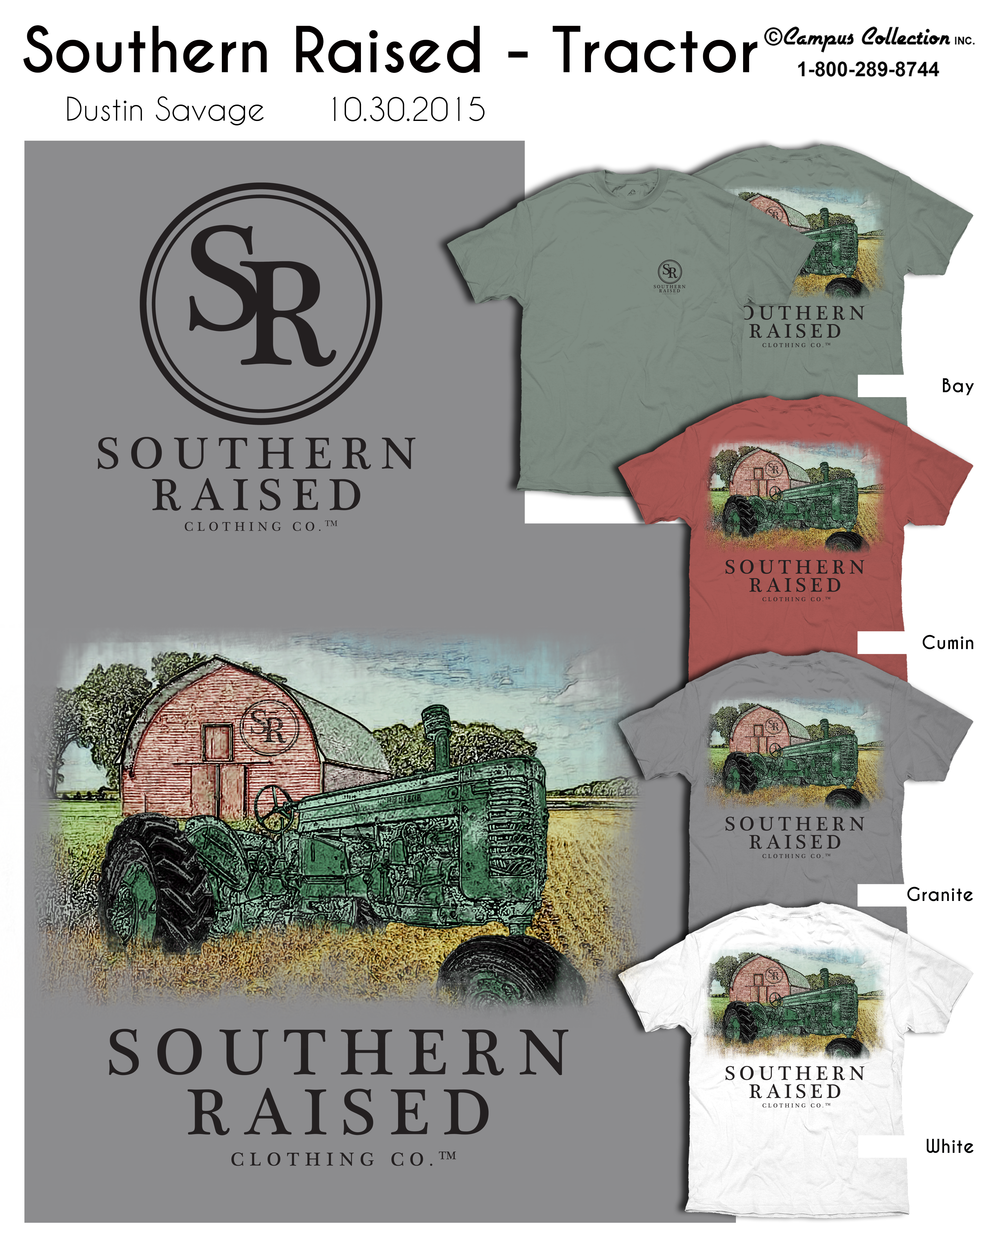 Southern Raised_Tractor.png